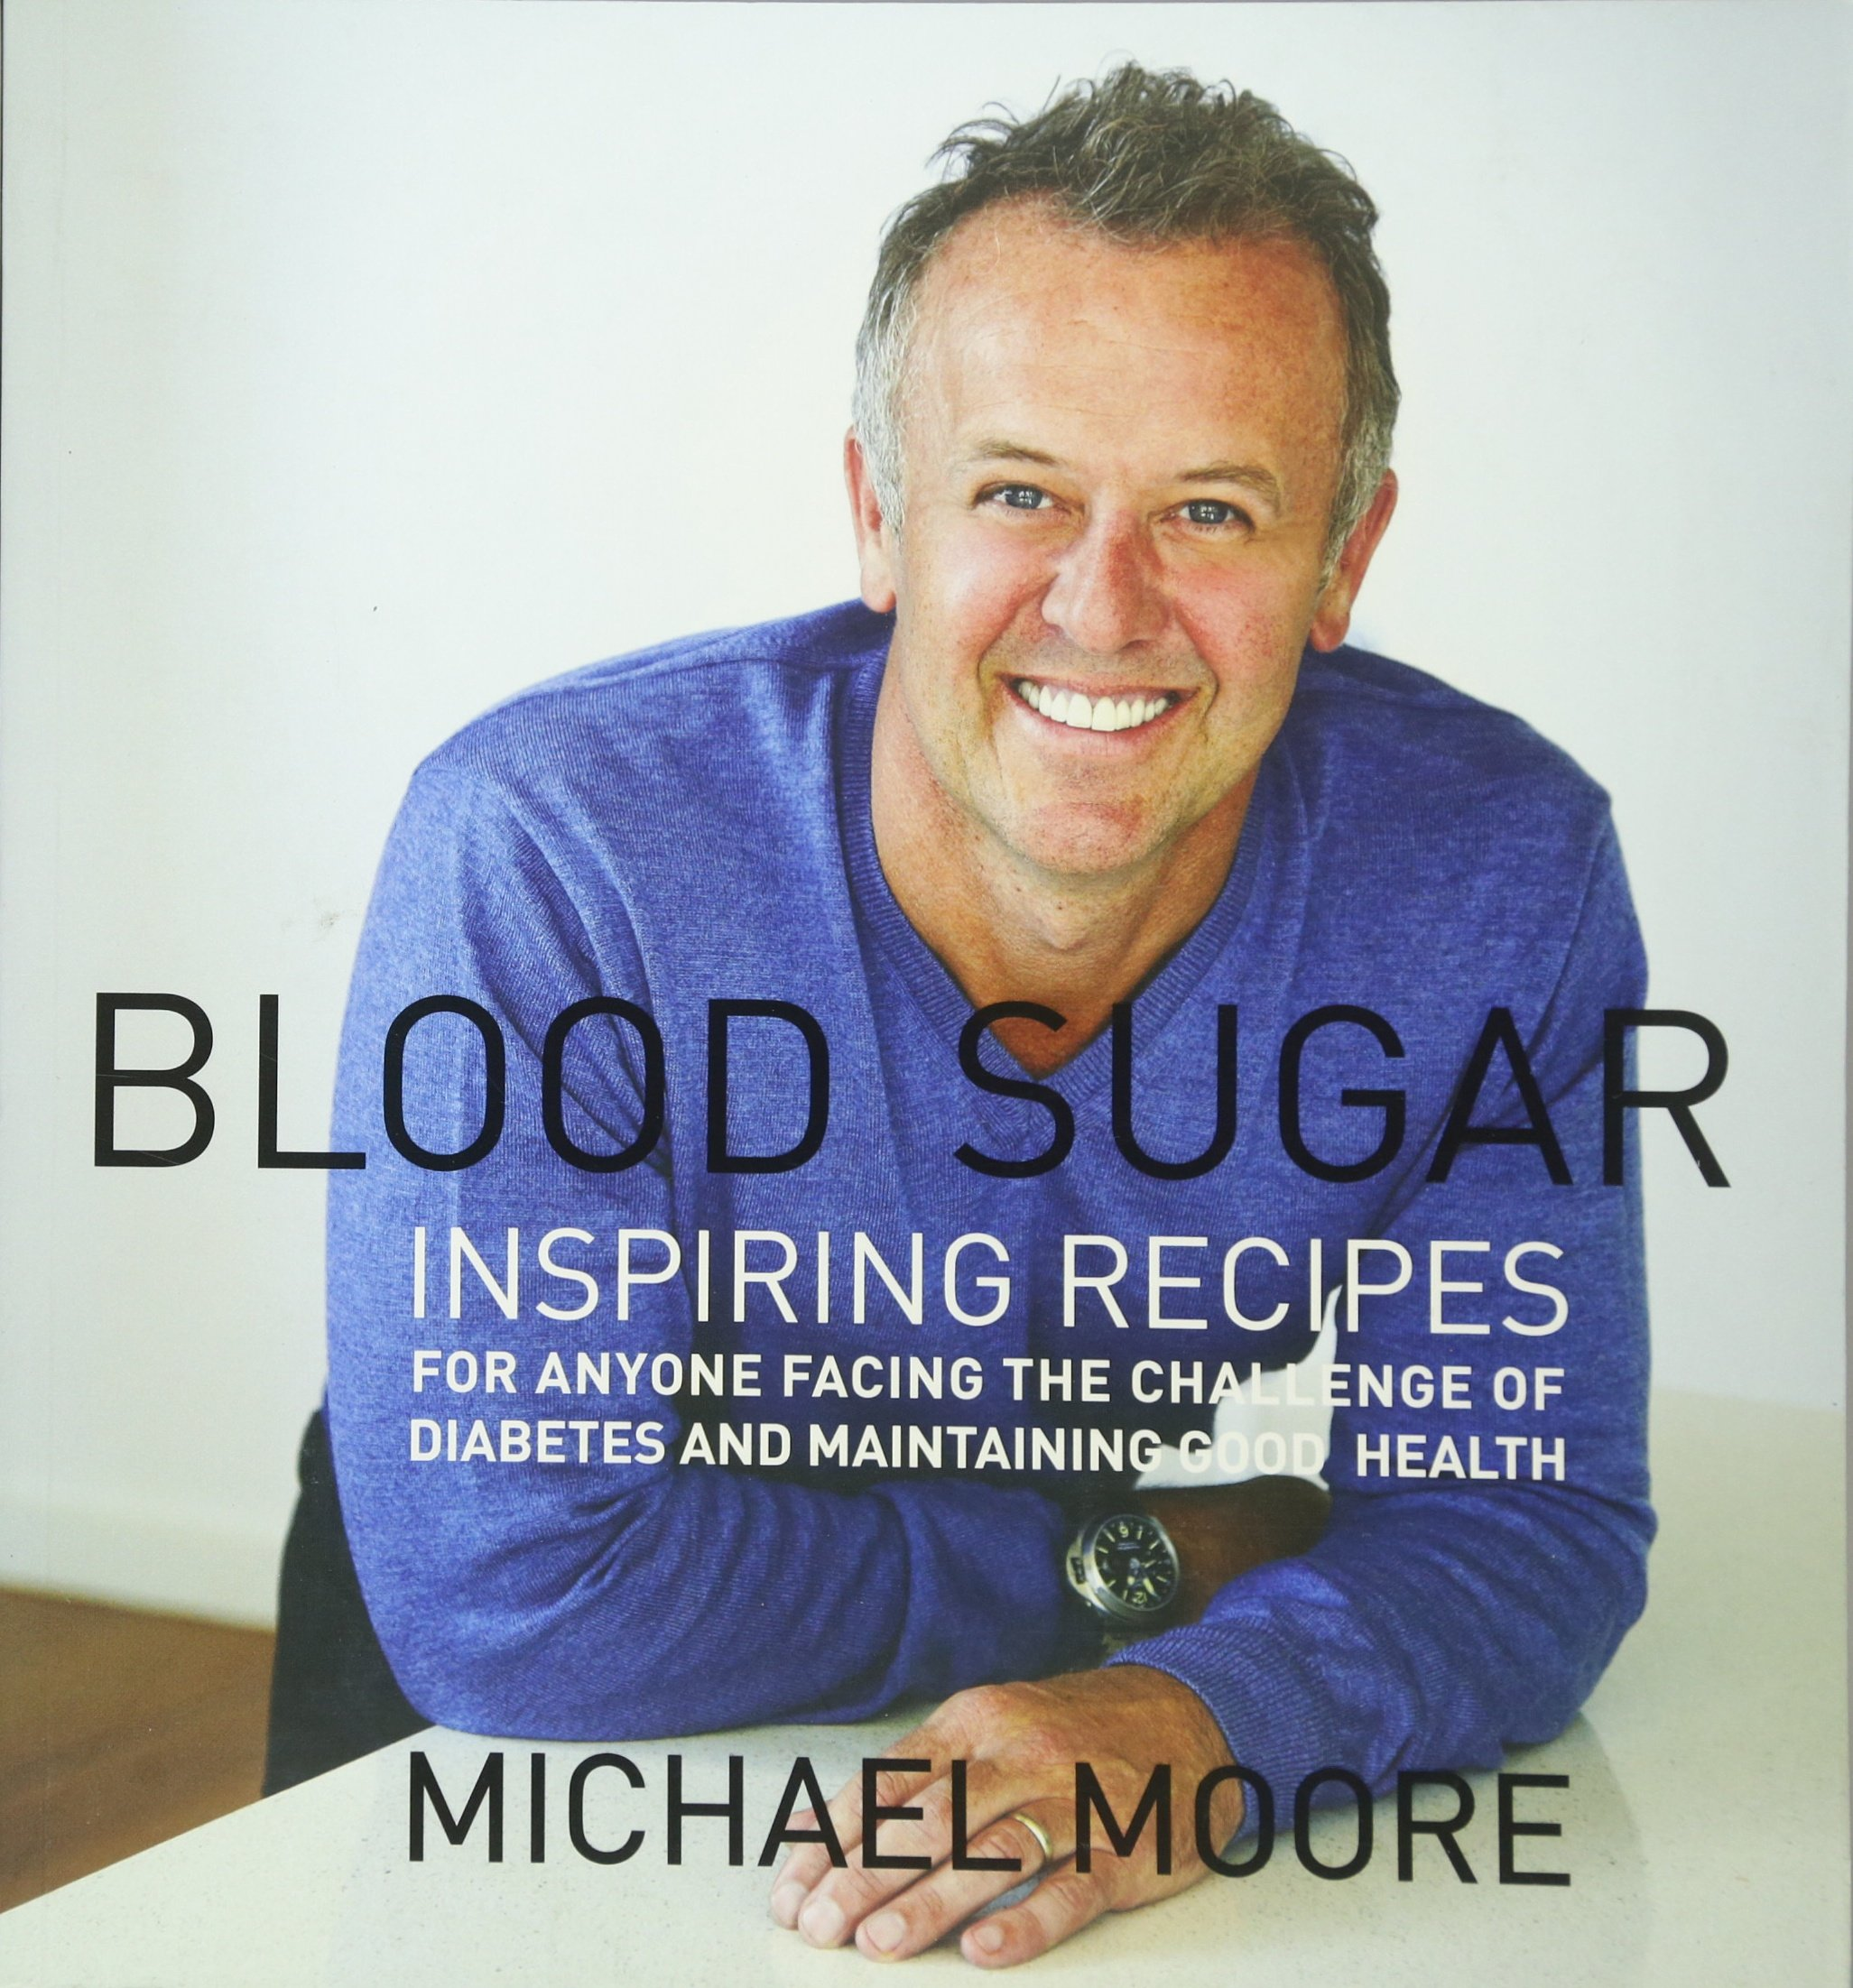 Blood Sugar: Inspiring Recipes For Anyone Facing The Challenge Of Diabetes  And Maintaining Good Health: Michael Moore: 9781742576046: Amazon: Books